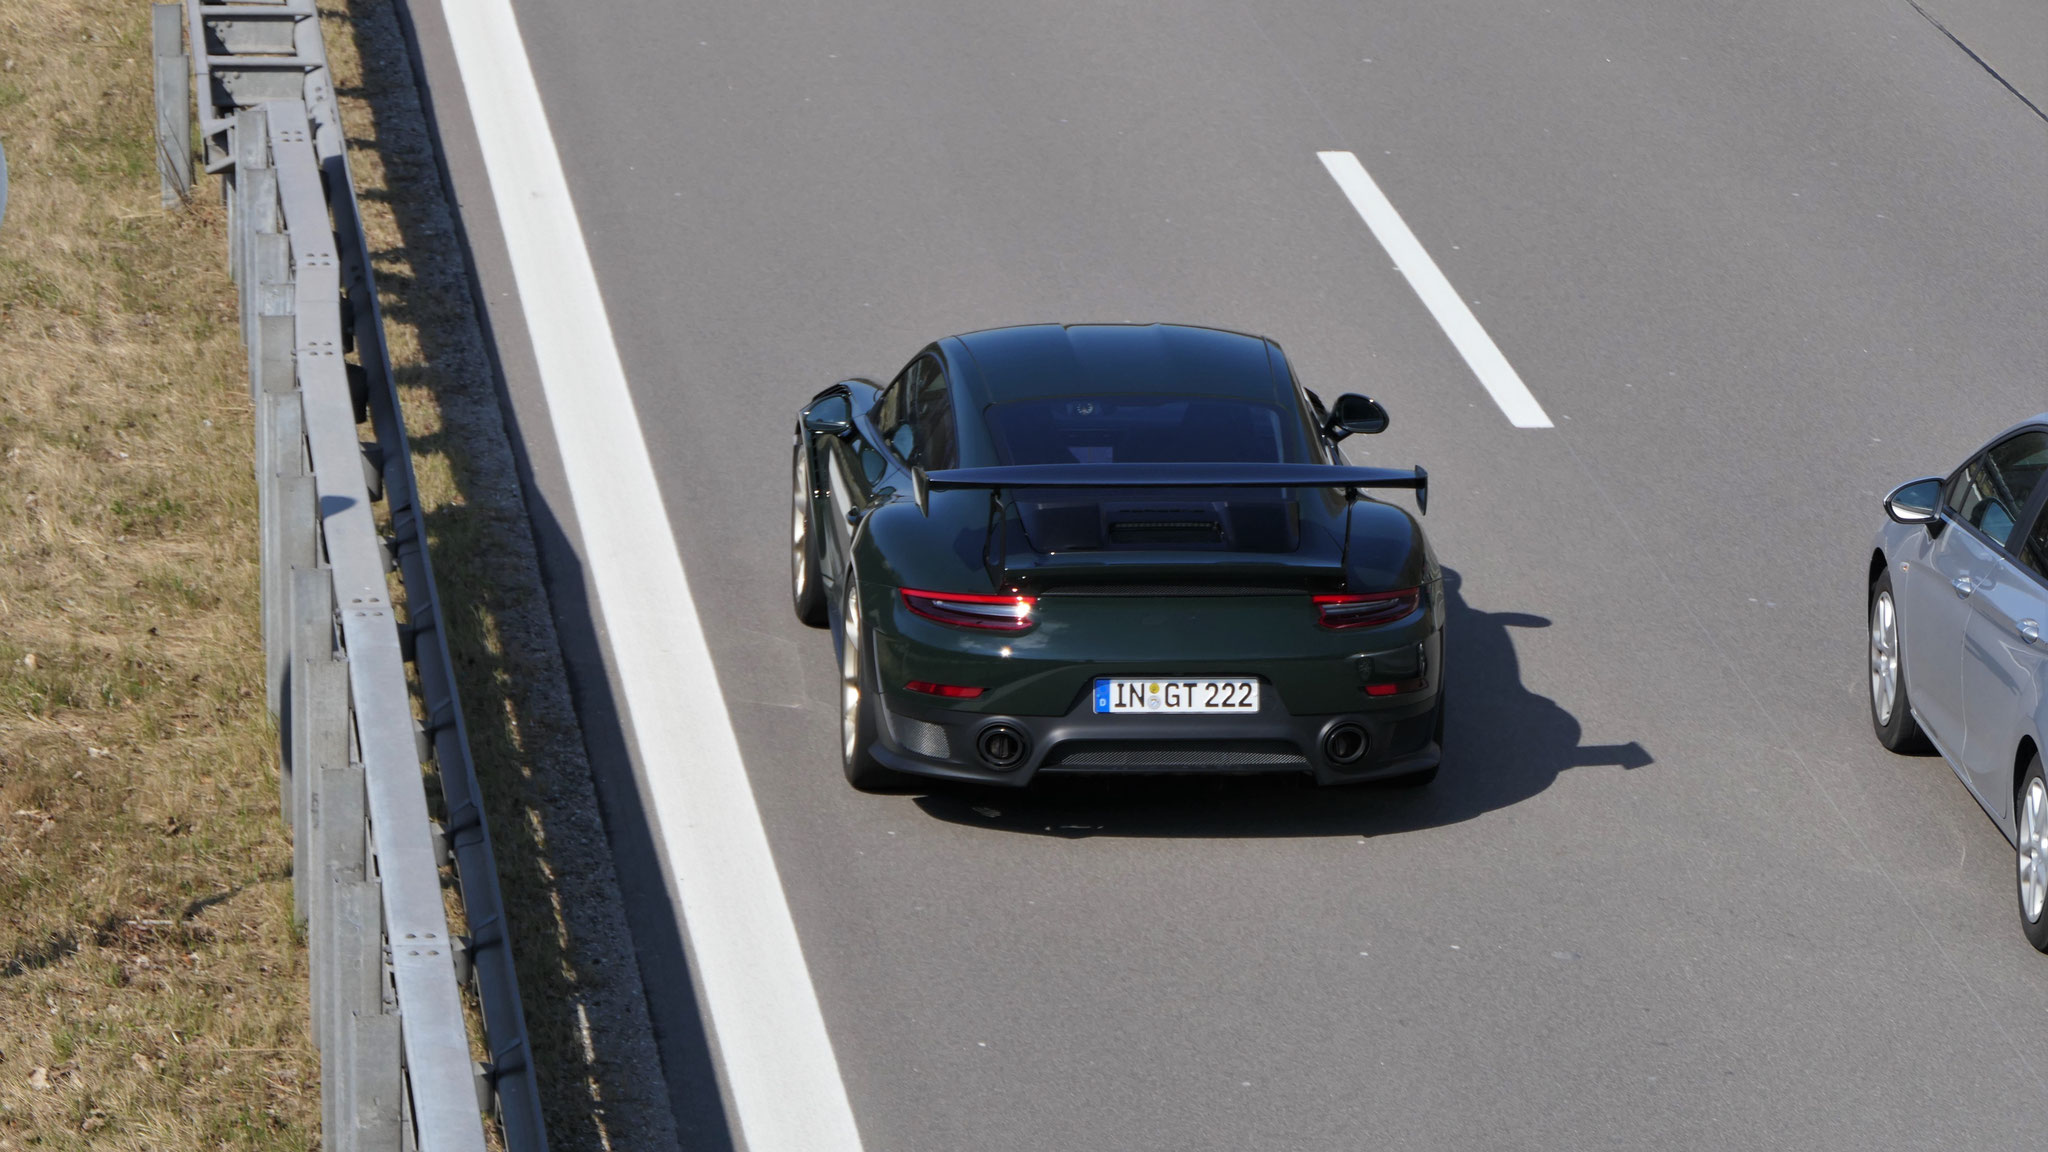 Porsche 911 GT2 RS Weissach - IN-GT-222